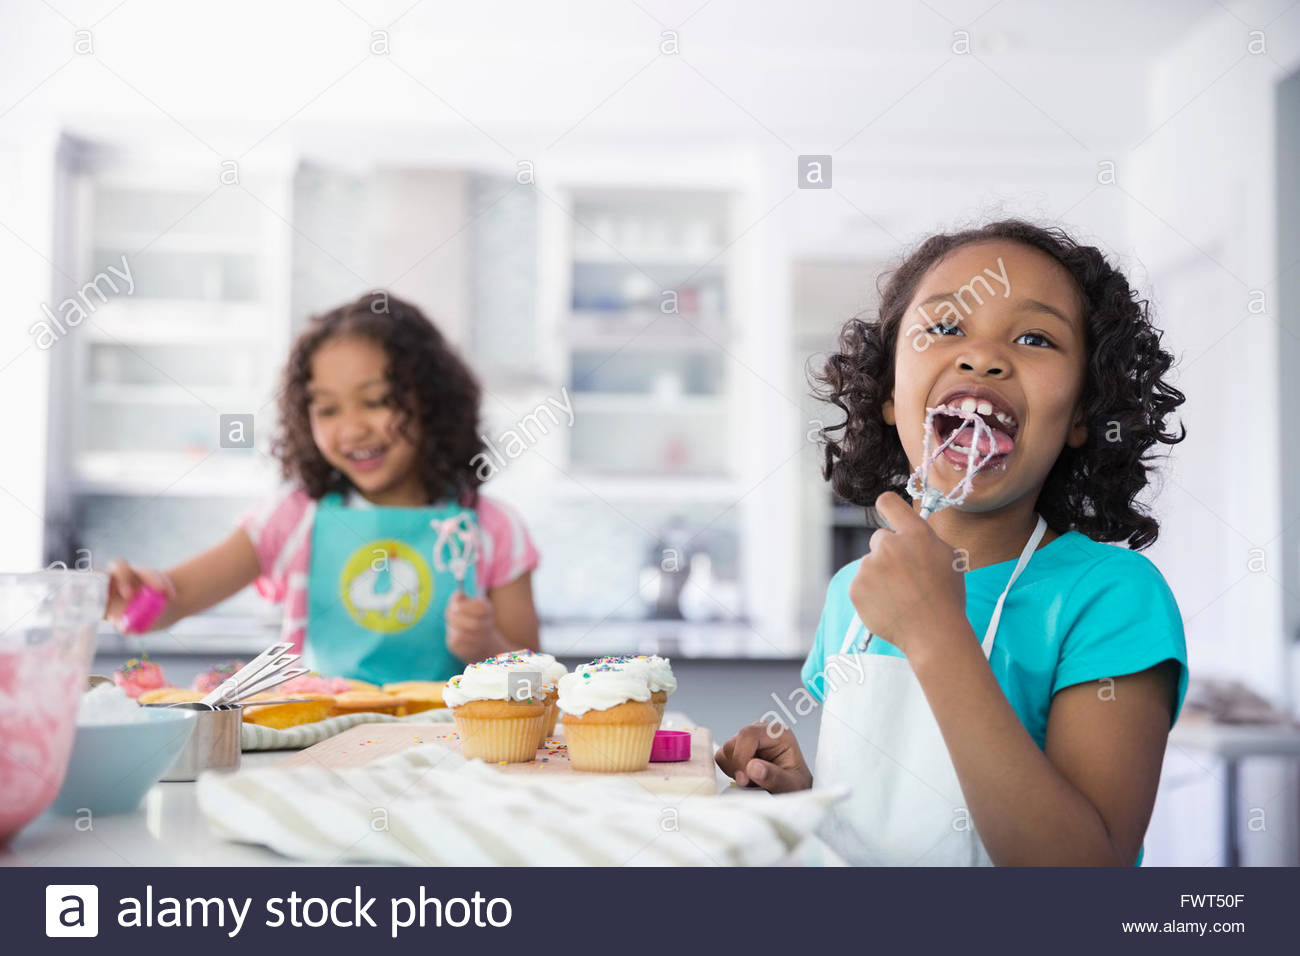 little girl licking icing off whisk while decorating cupcakes - Woman Decorating Cupcakes